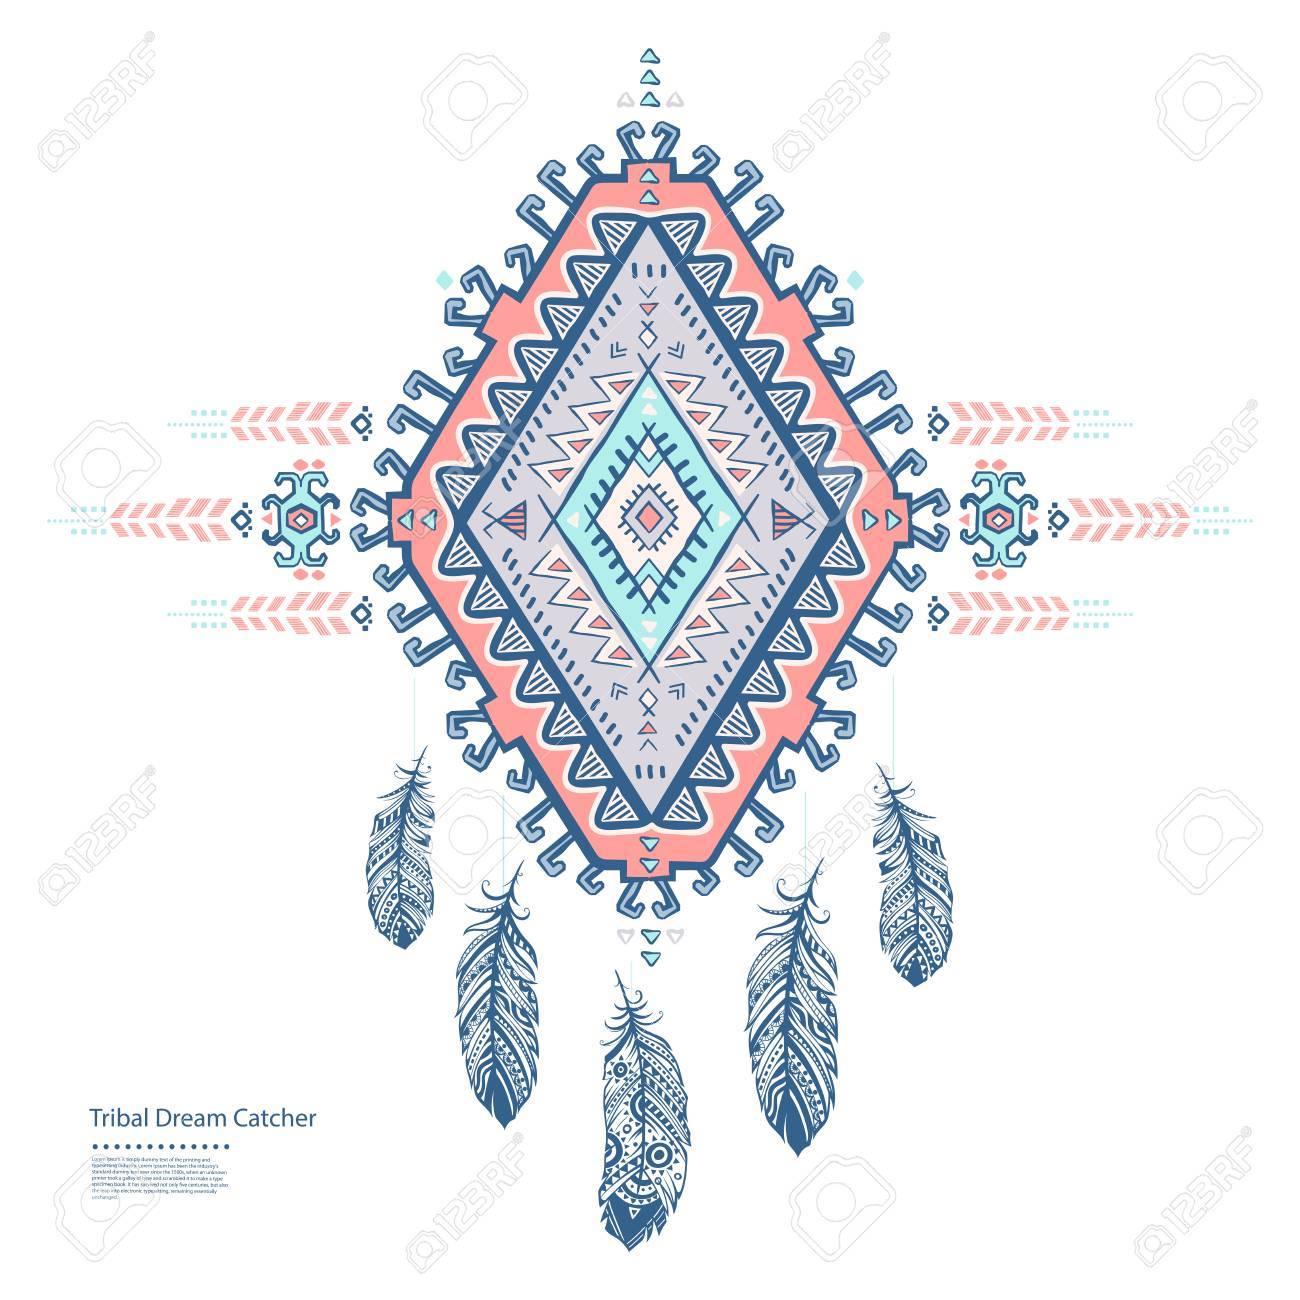 Ethnic american indian dream catcher can be used as a greeting ethnic american indian dream catcher can be used as a greeting card stock photo 44189422 m4hsunfo